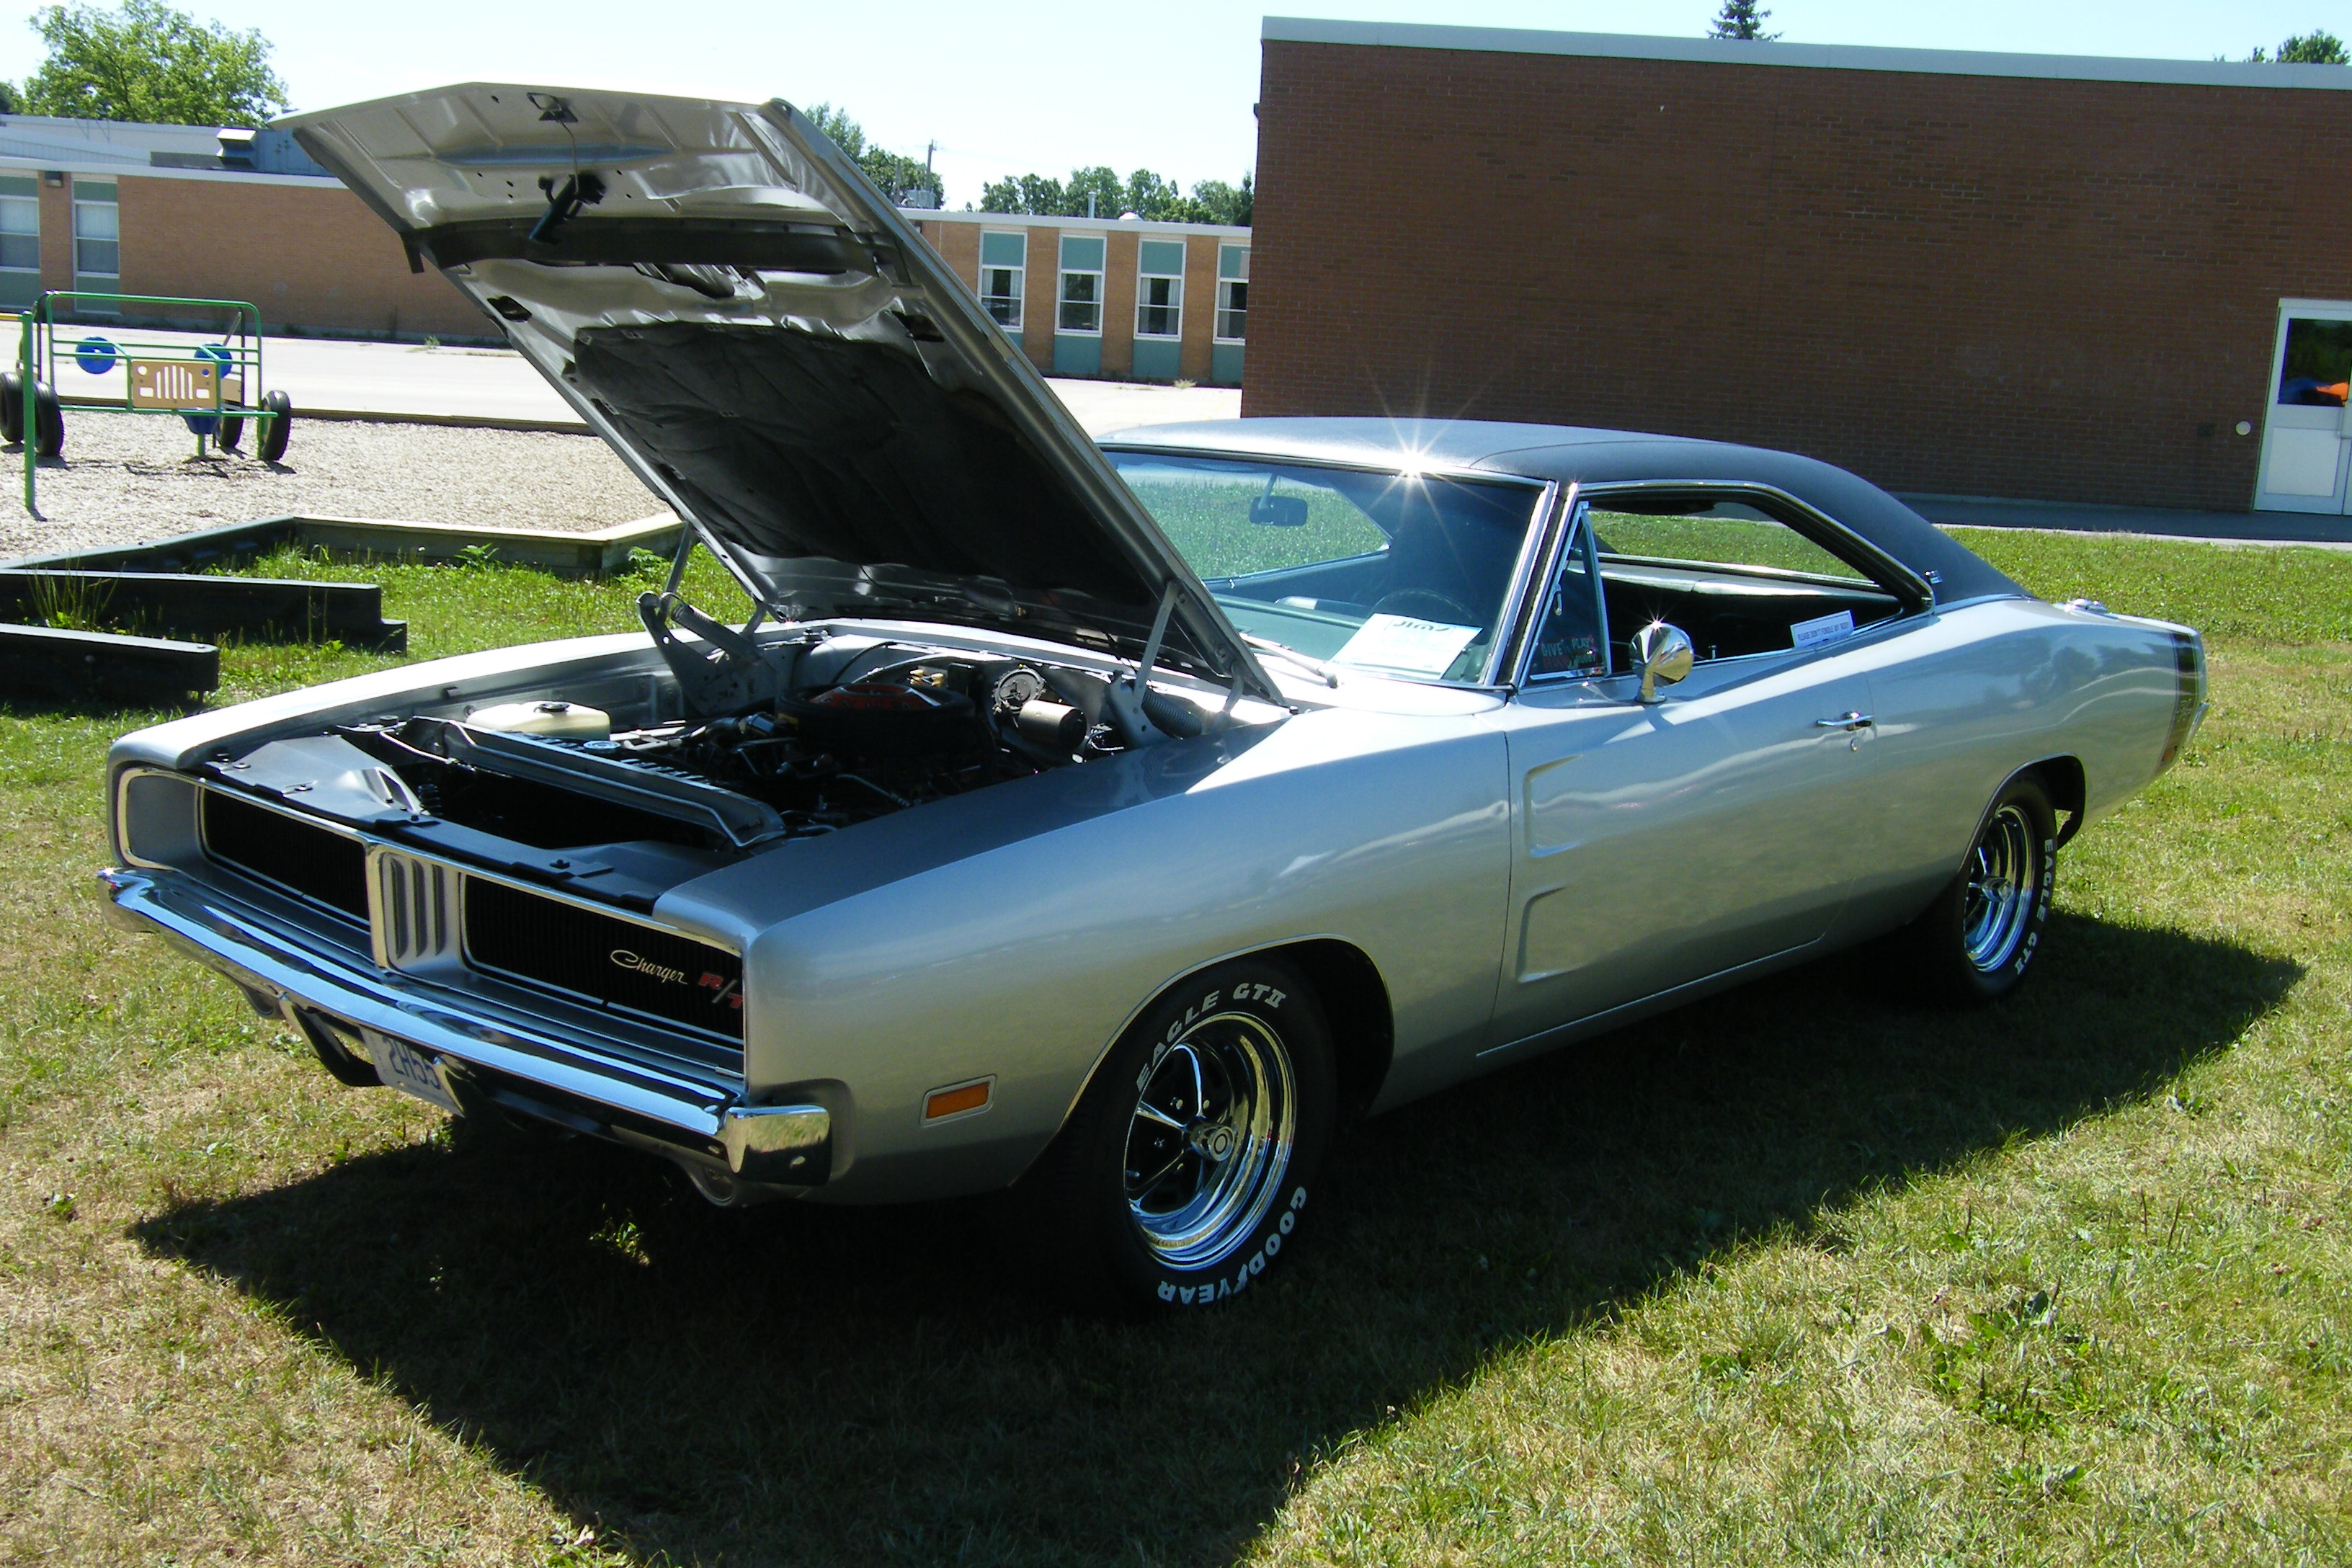 69 Dodge Charger RT-SE | Flickr - Photo Sharing!